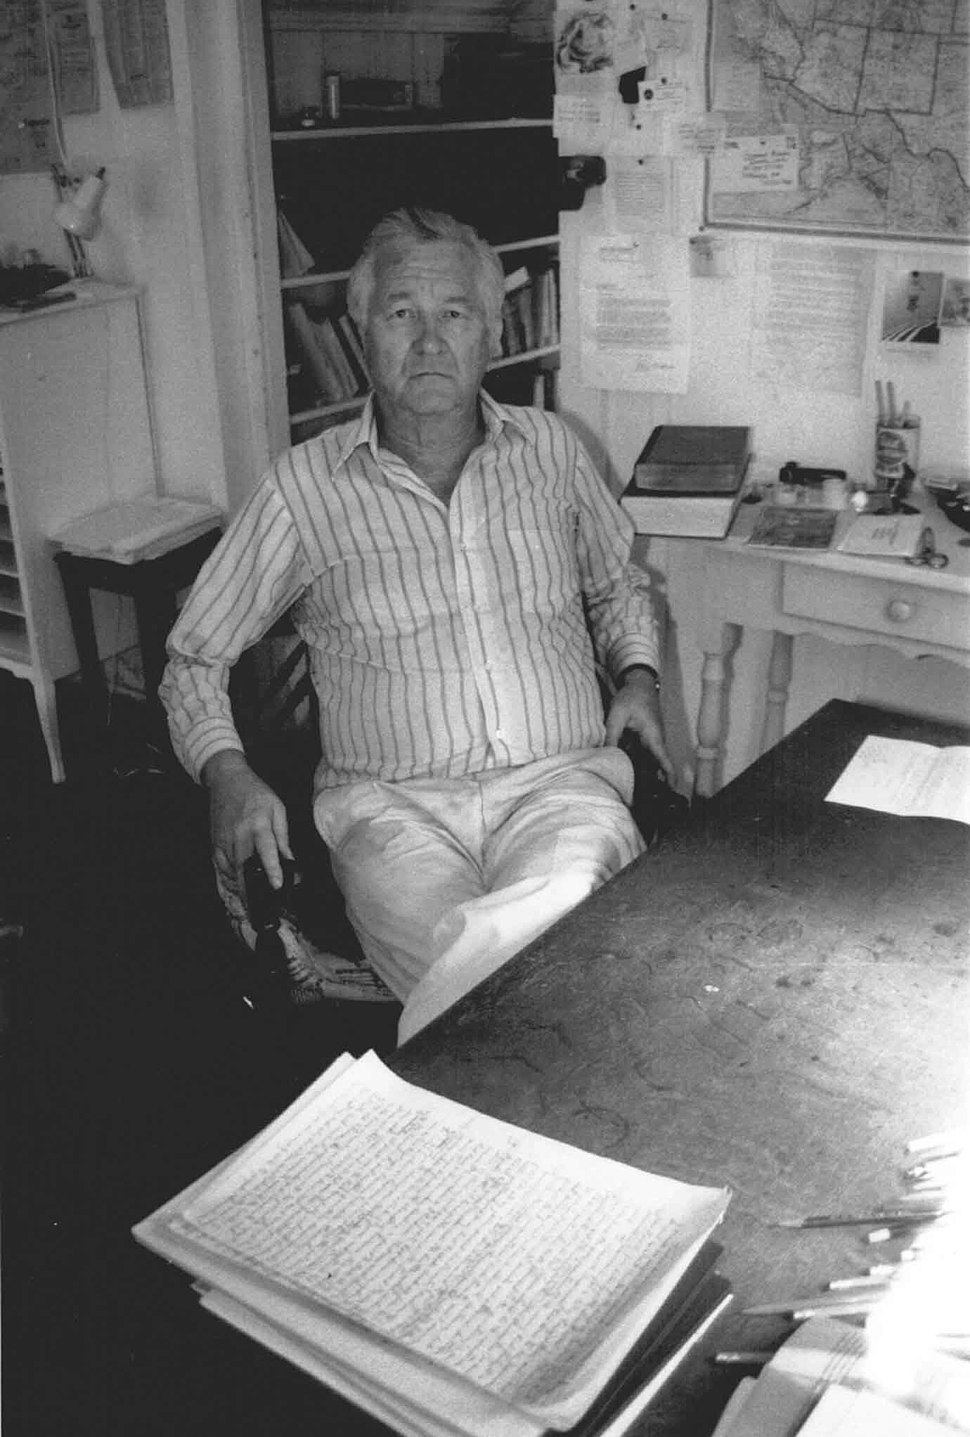 Bill Styron in his West Chop writing room on Martha's Vineyard - August 1989